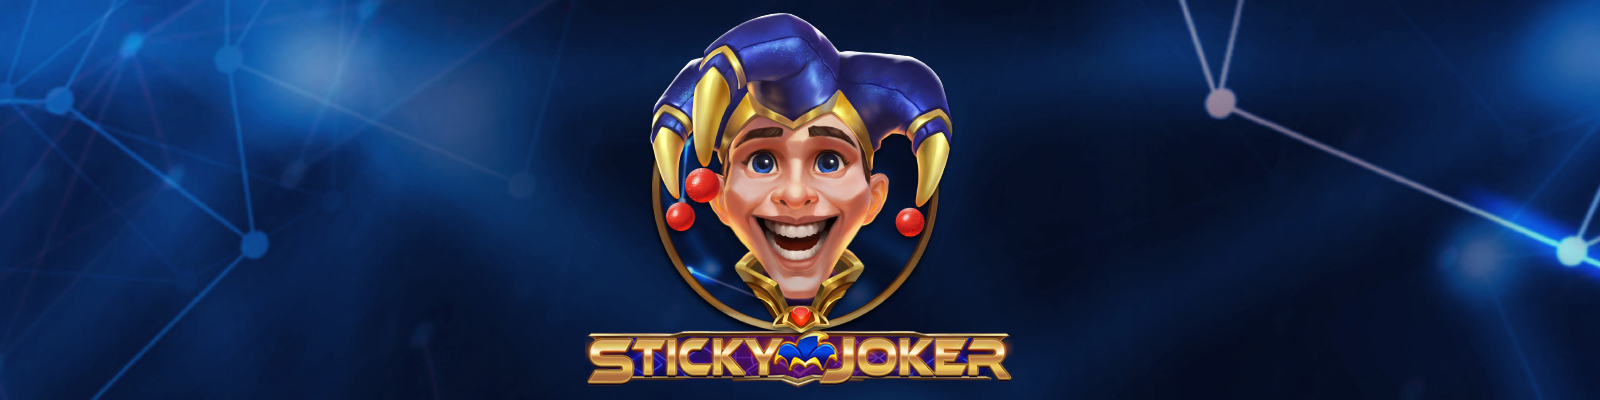 Sticky Joker – Play'n Go